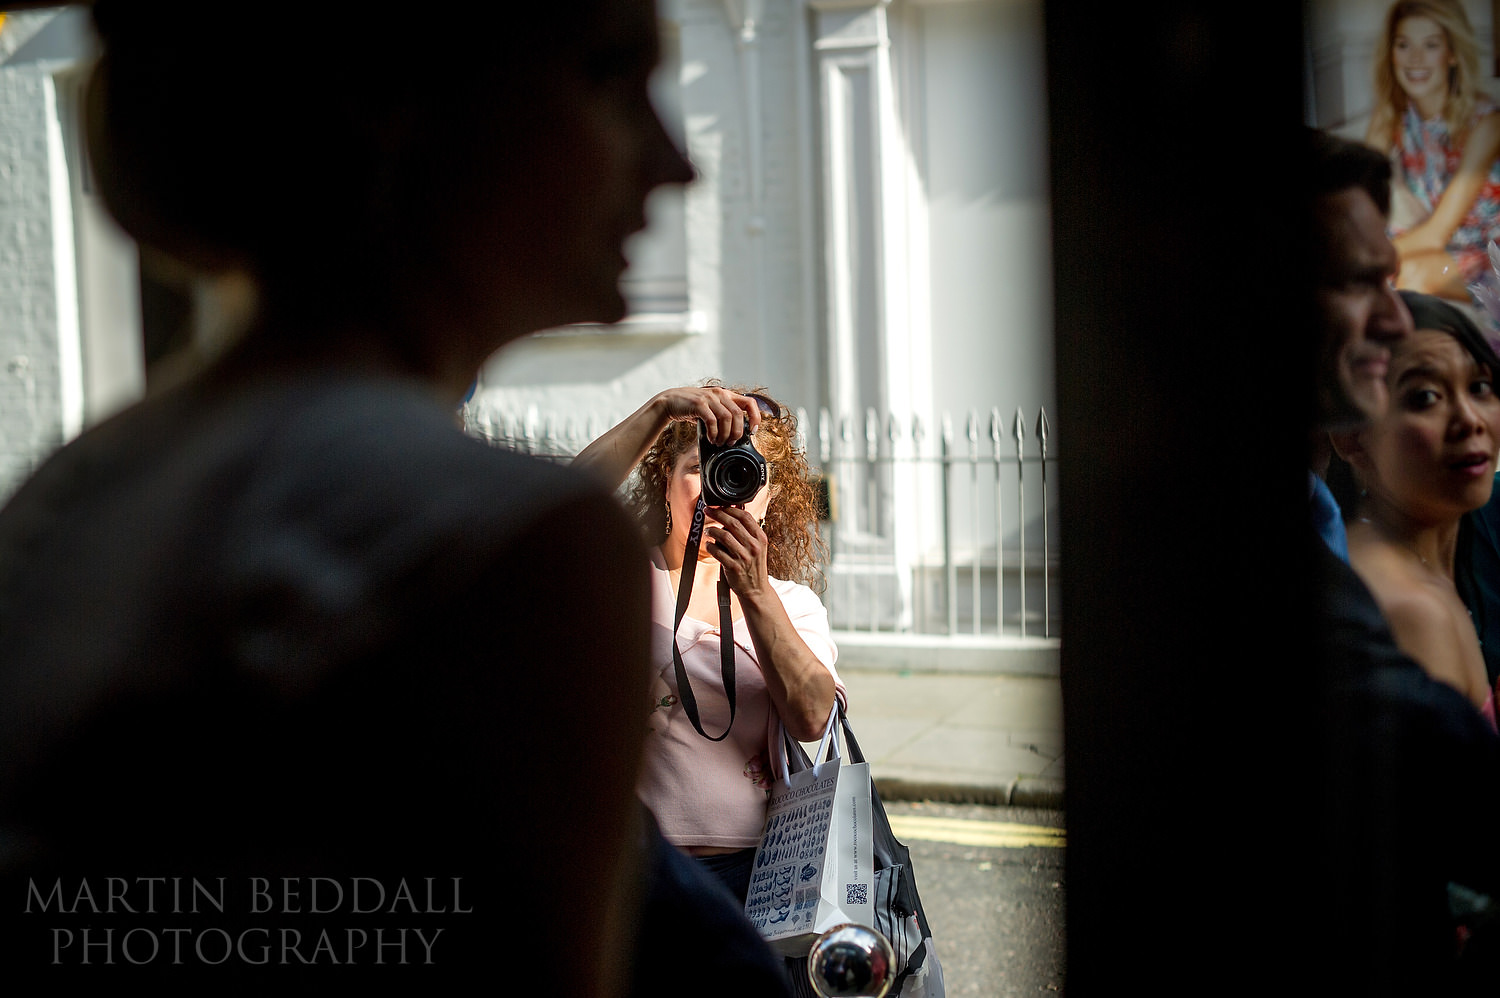 Passerby photographing the bride